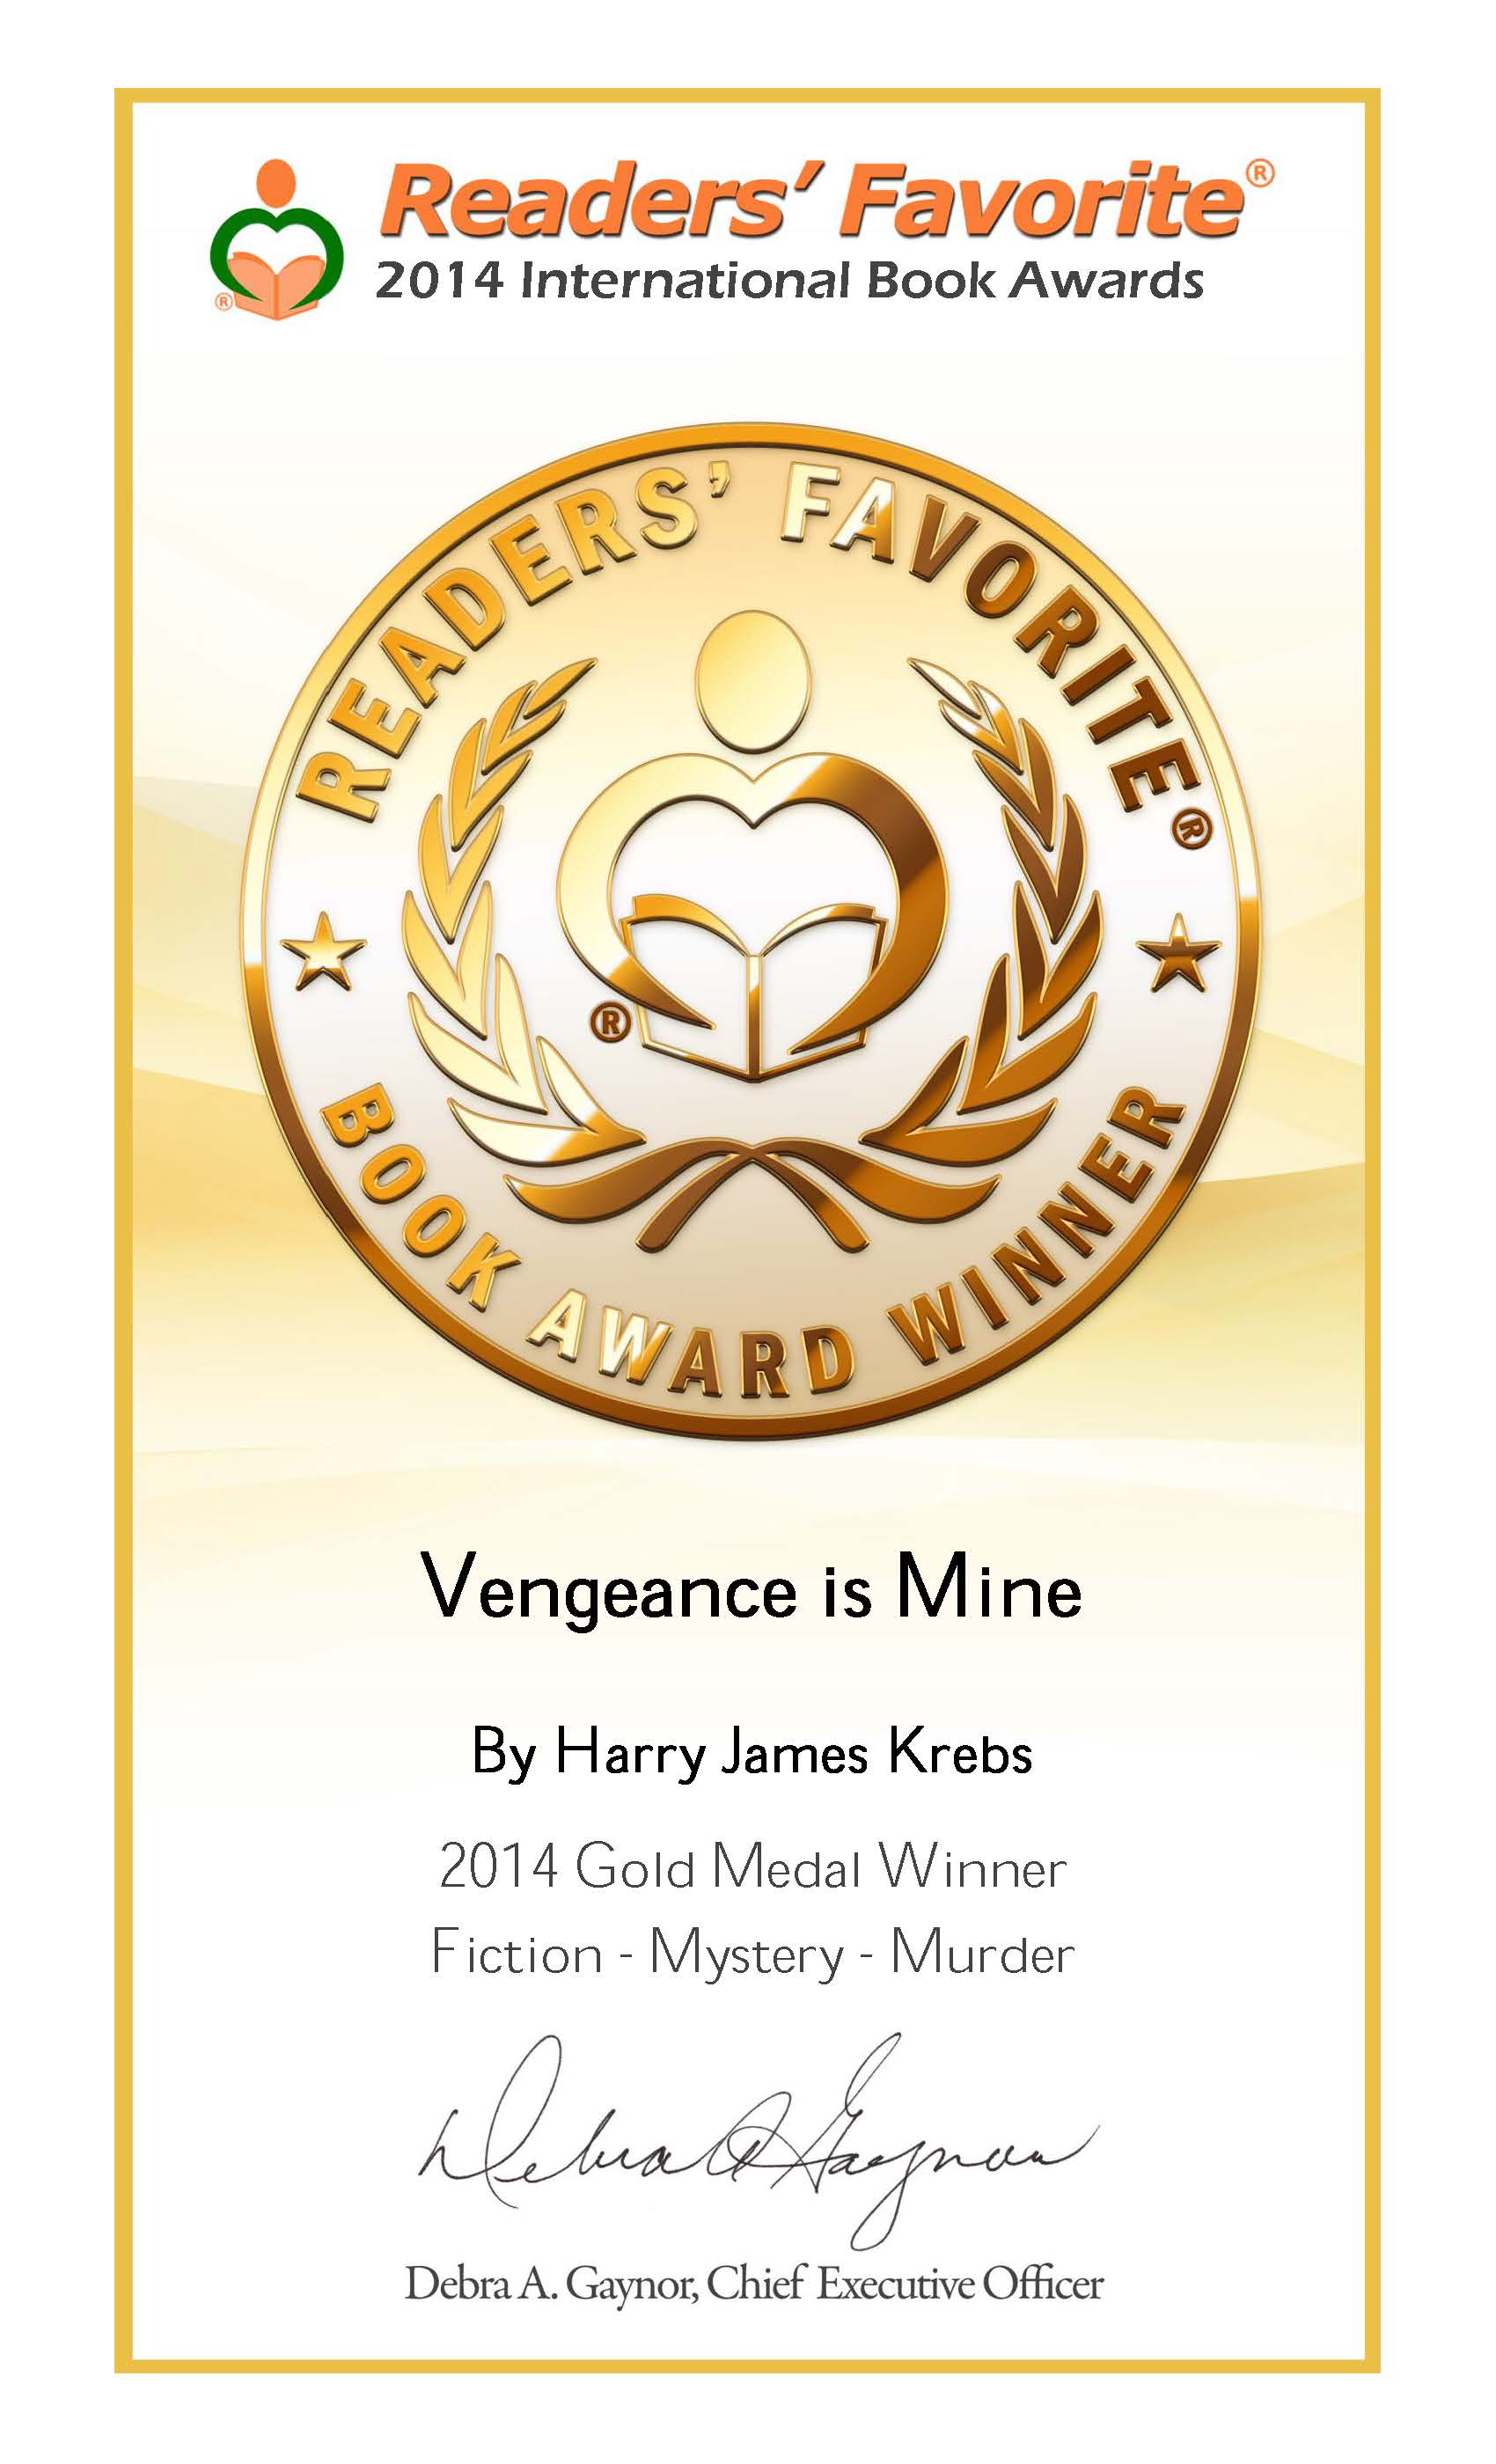 'Vengeance is Mine' wins Readers' Favorite 2014 Gold Medal Award